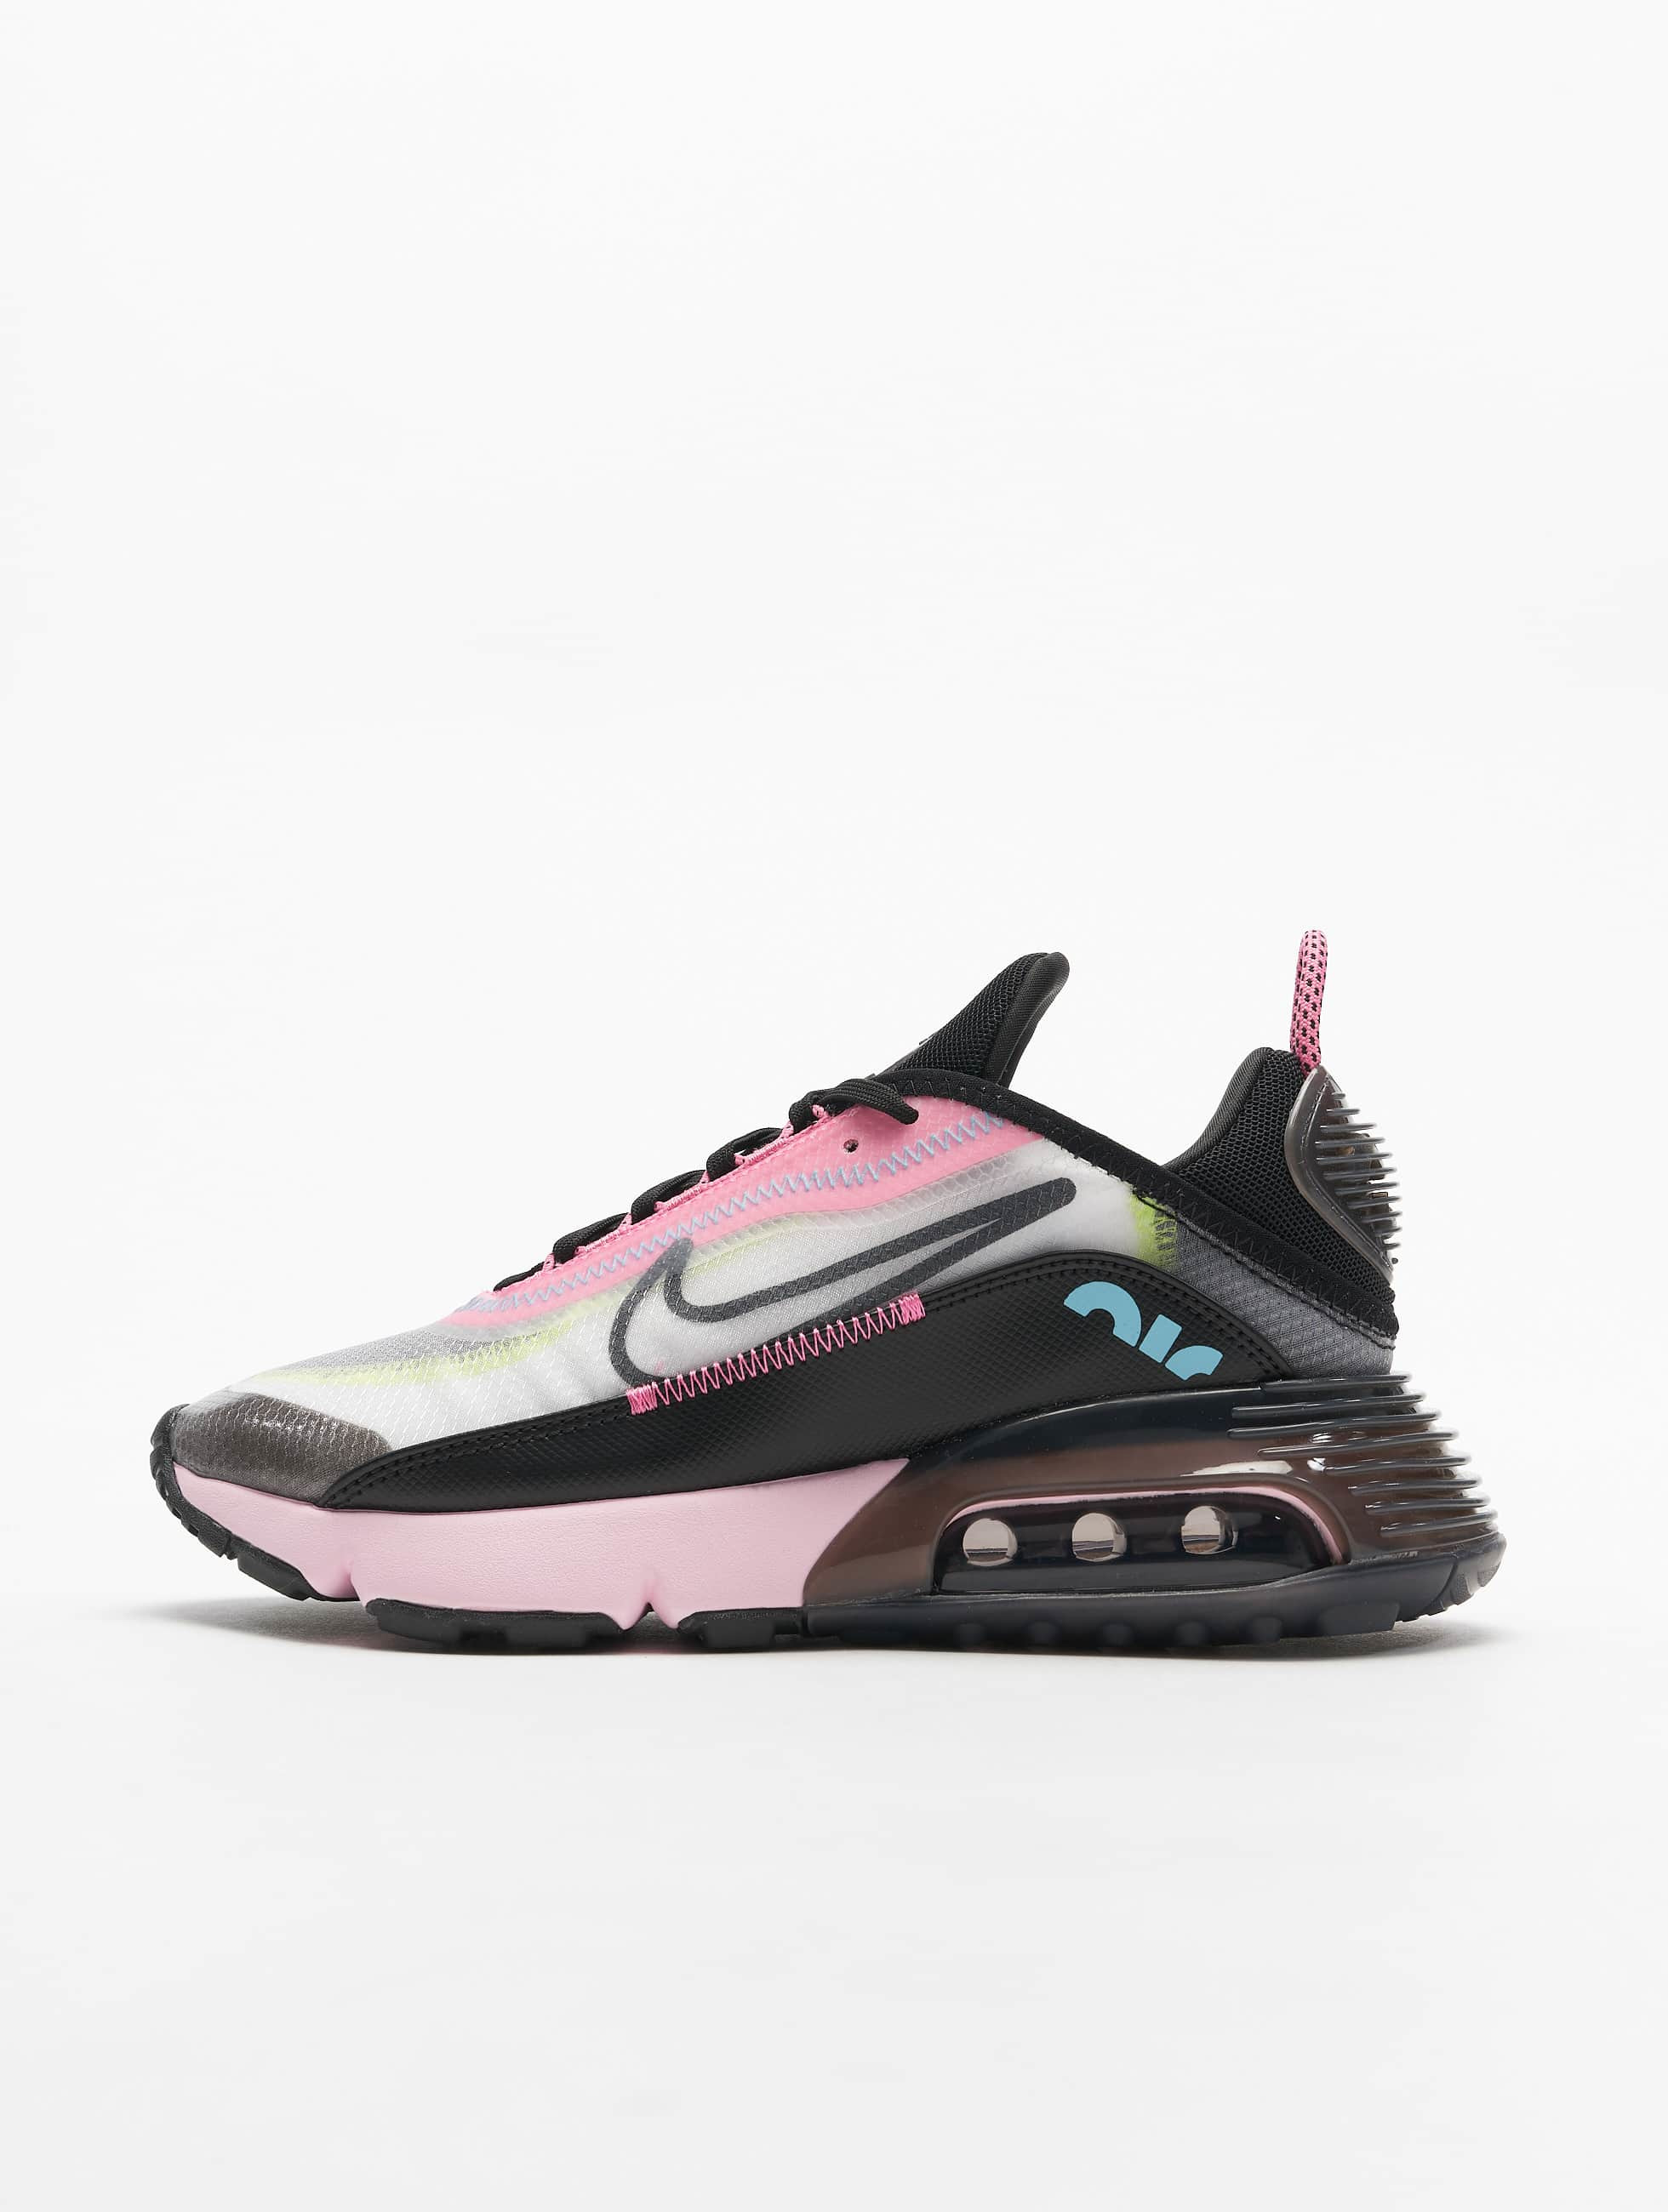 Nike Air Max 2090 Sneakers WhiteBlackPink Foam Lotus Pink